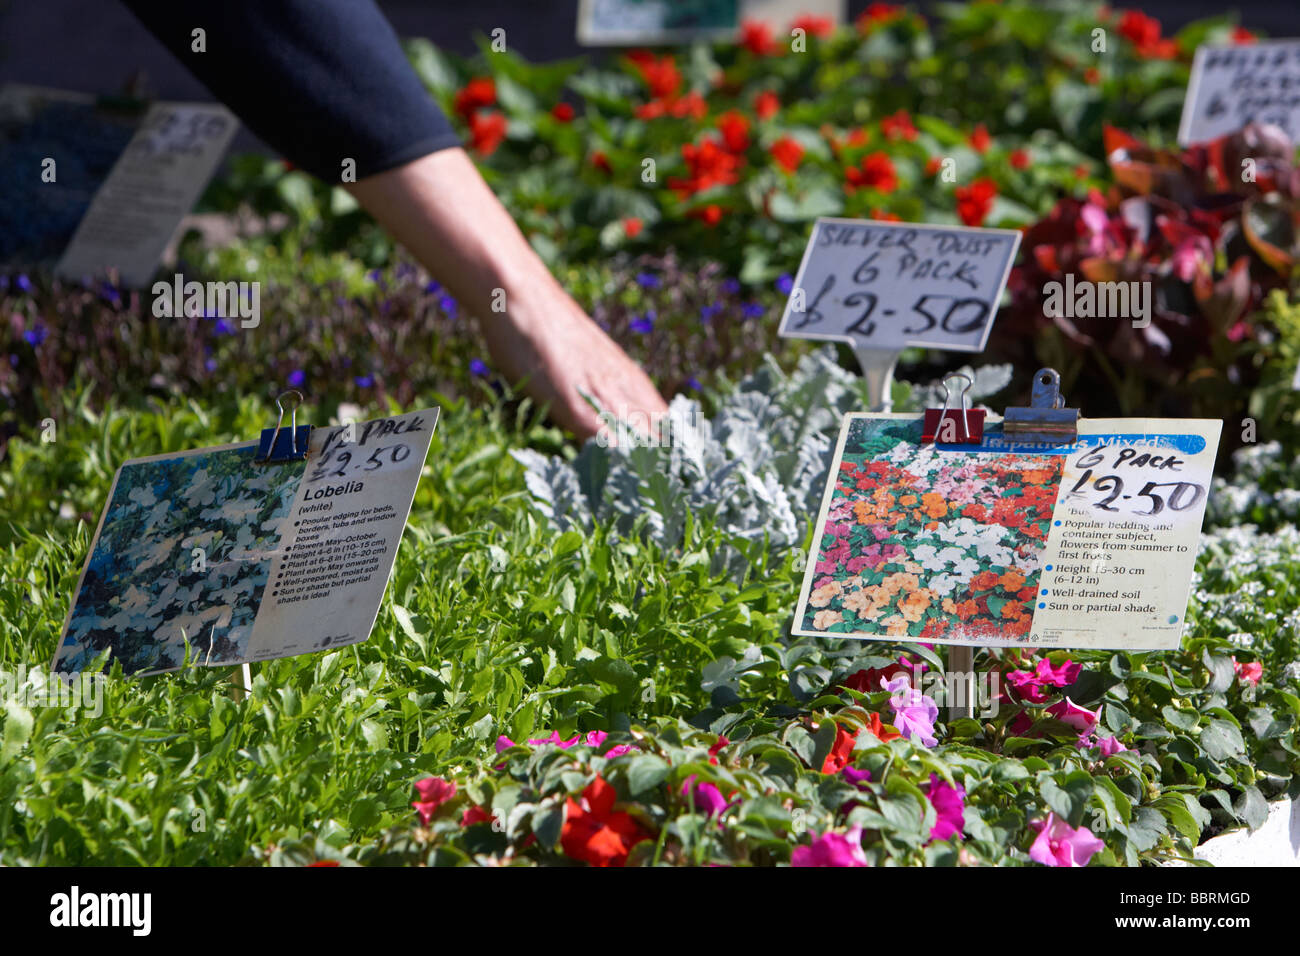 Outdoor Flowers For Sale Part - 15: Stock Photo - Garden Flowers For Sale At An Outdoor Market In The Uk With  Names And Prices Mans Hand In The Background